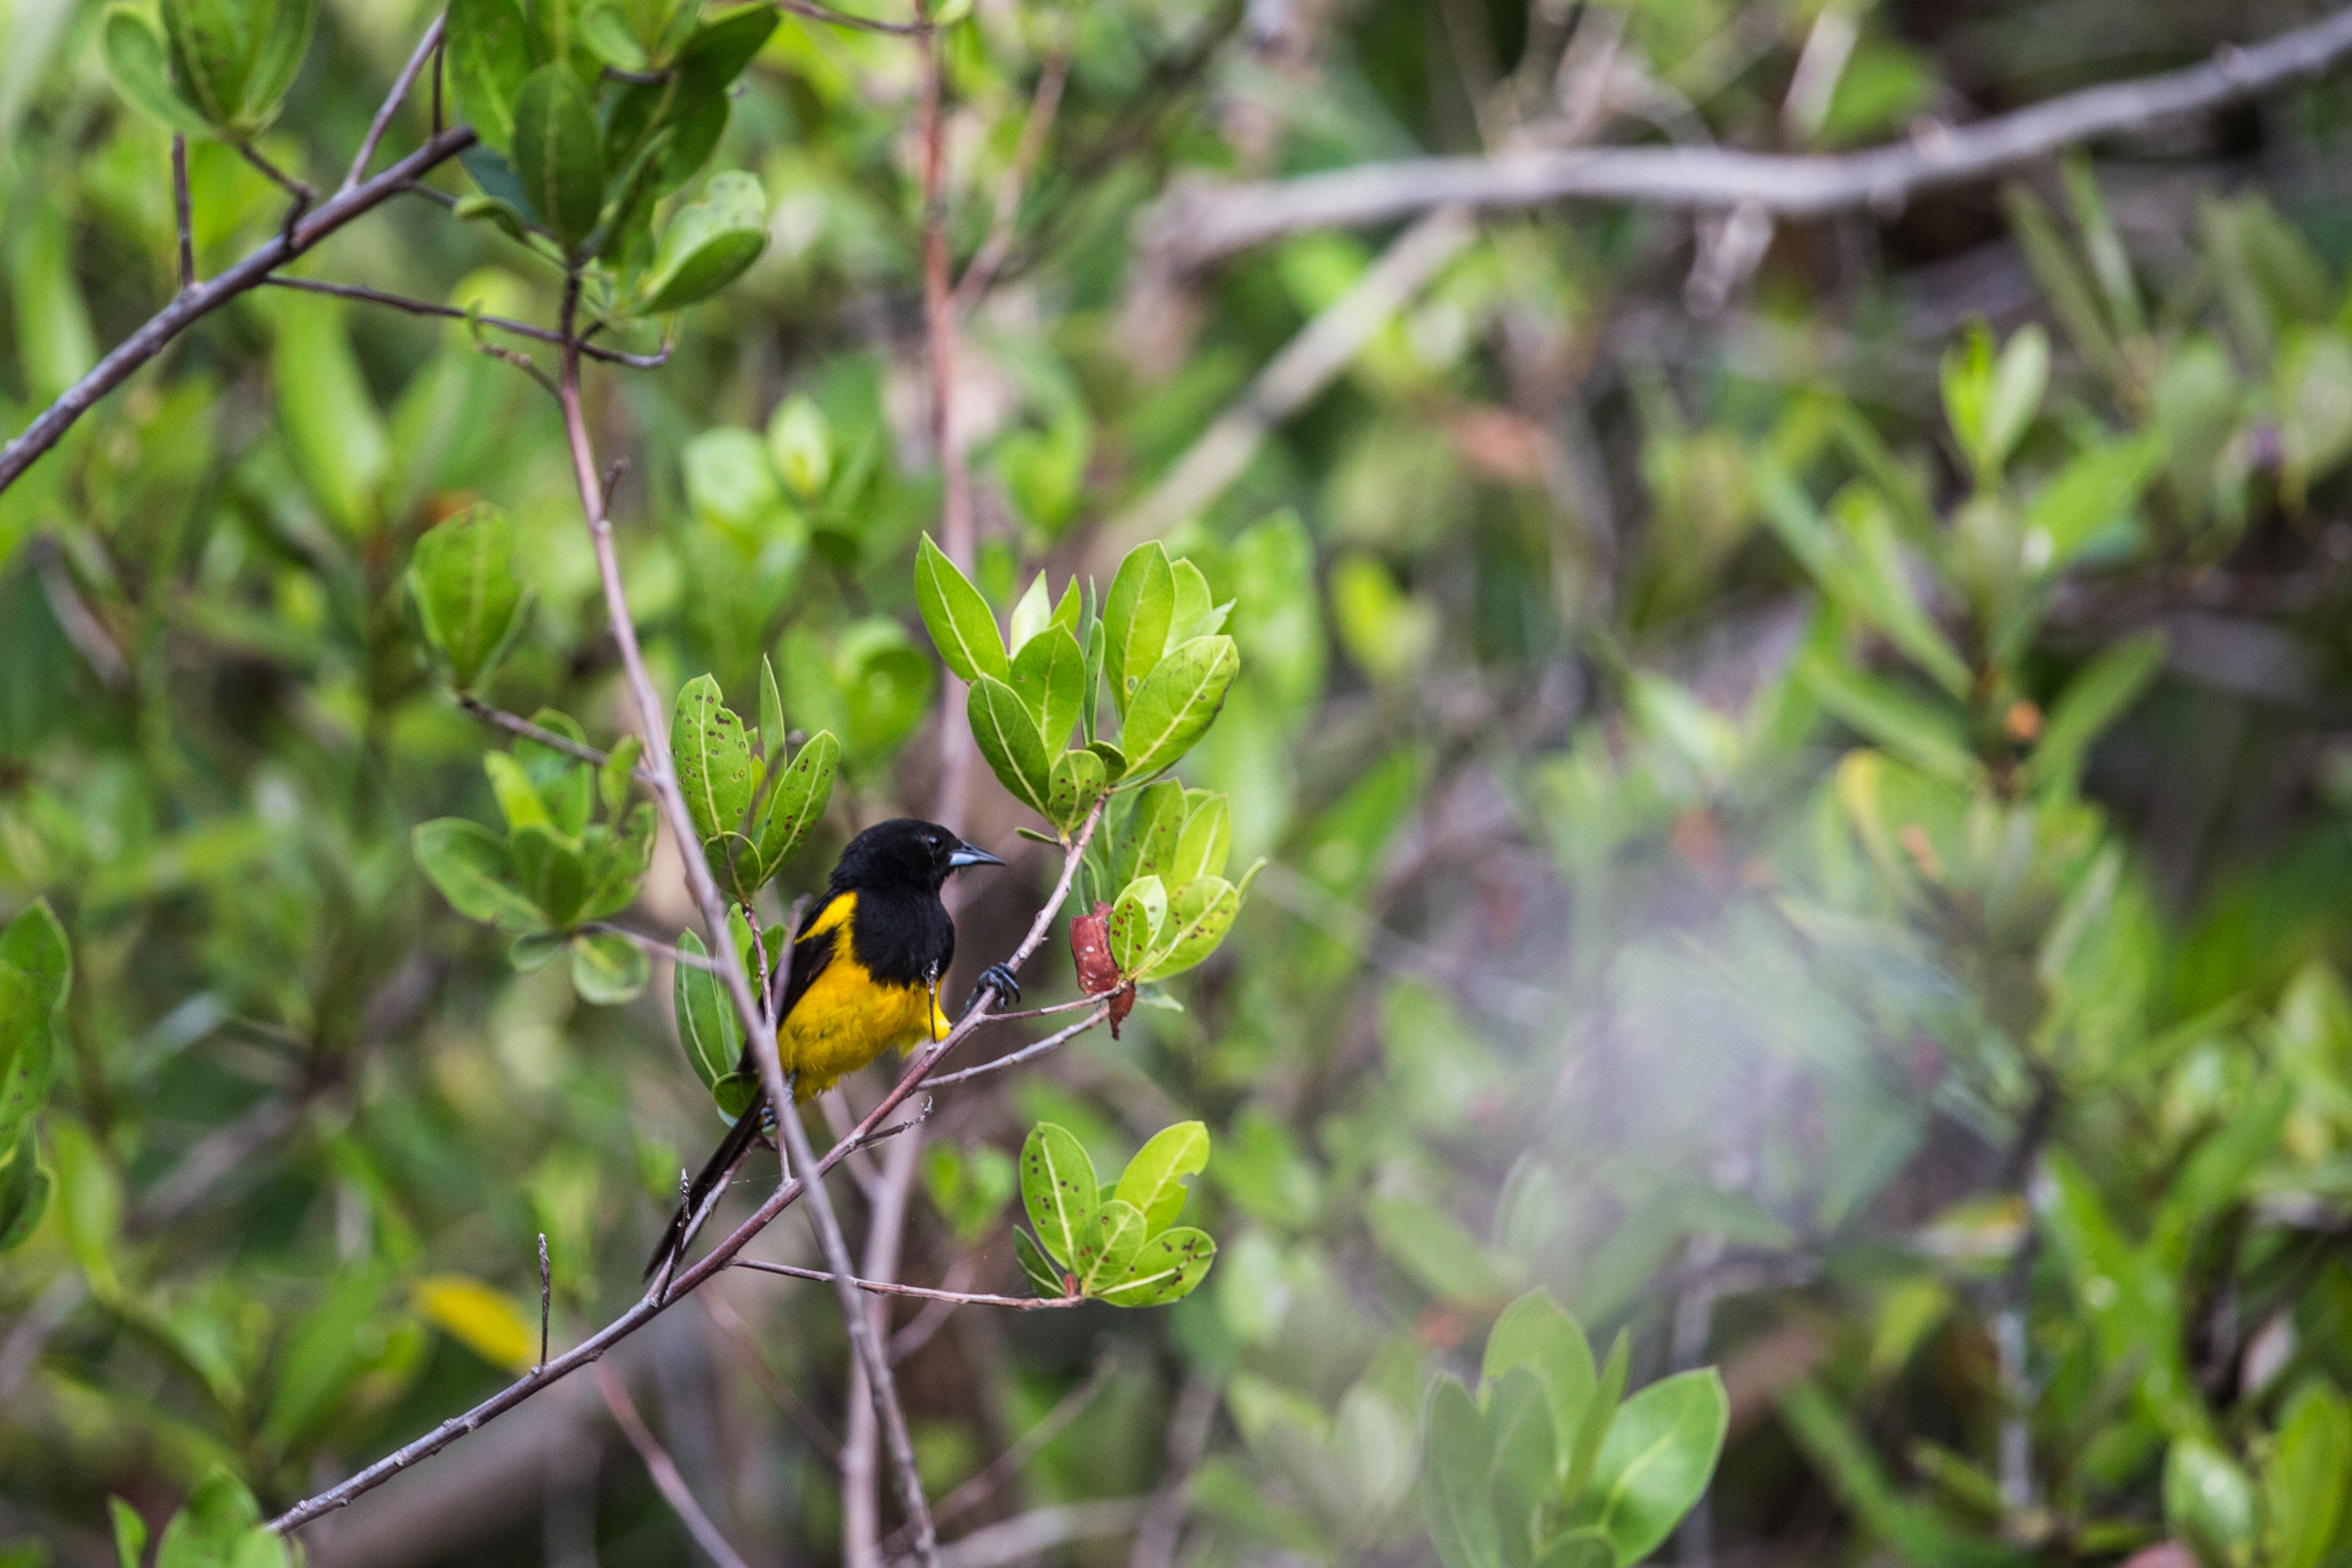 black-vented oriole (Icterus wagleri) - These large orioles reside in Mexico and Central America, occasionally making their way into the southwestern US.